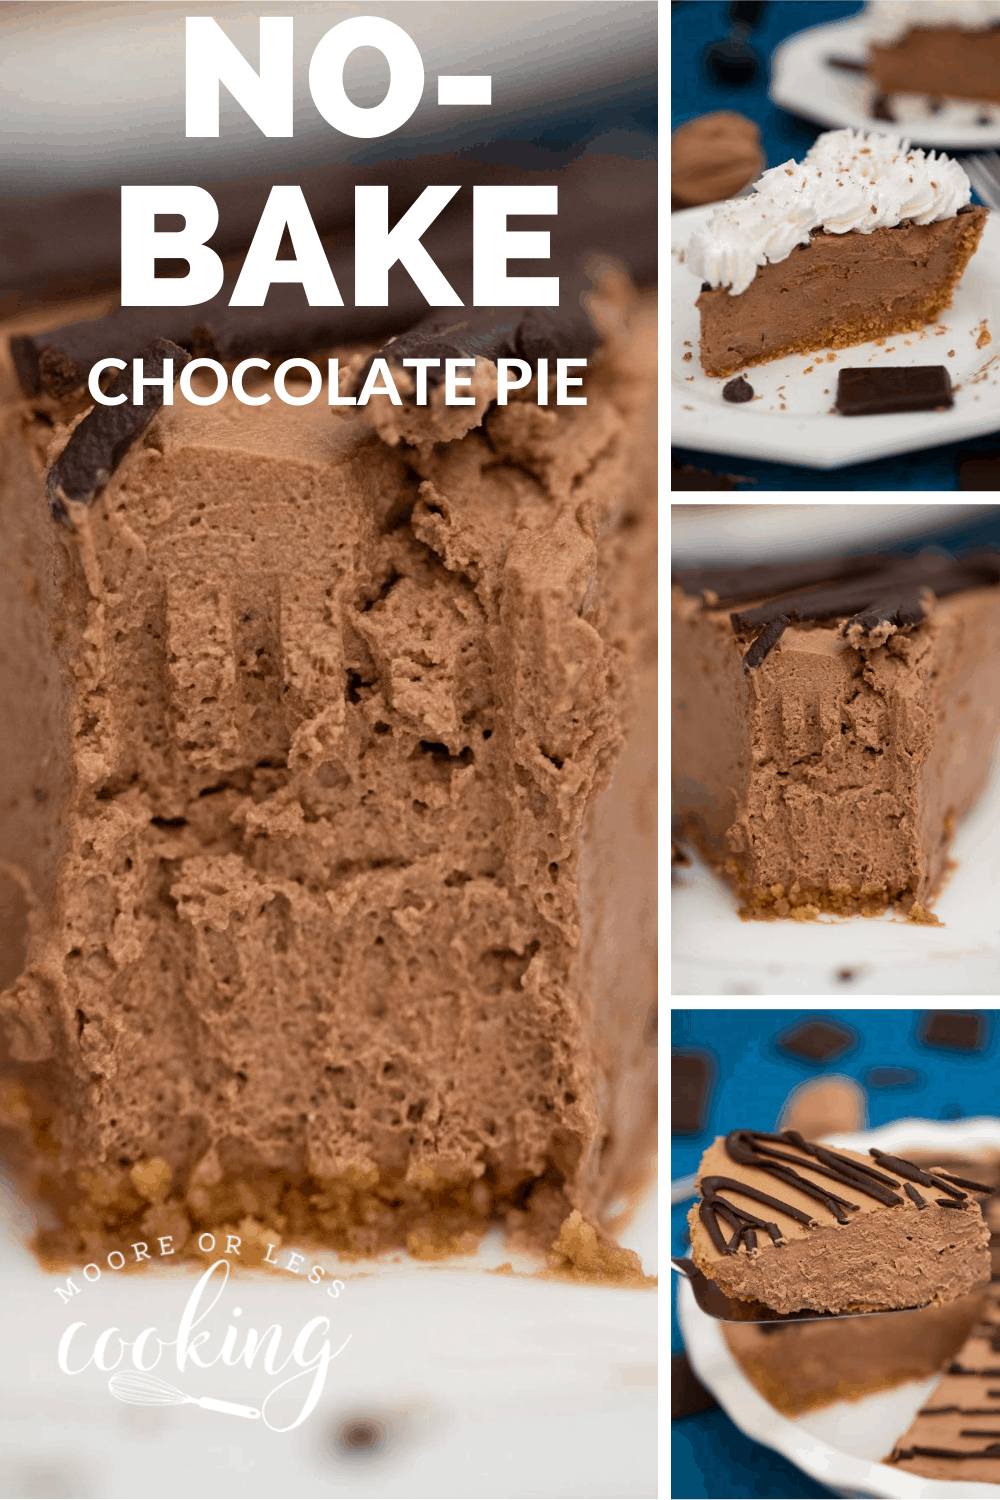 This Super Easy, Ultra-Rich, and Creamy Chocolate Pie is the easiest pie to make ever! With only seven ingredients and a couple of minutes of time, you can have yourself one amazing pie to enjoy today. via @Mooreorlesscook